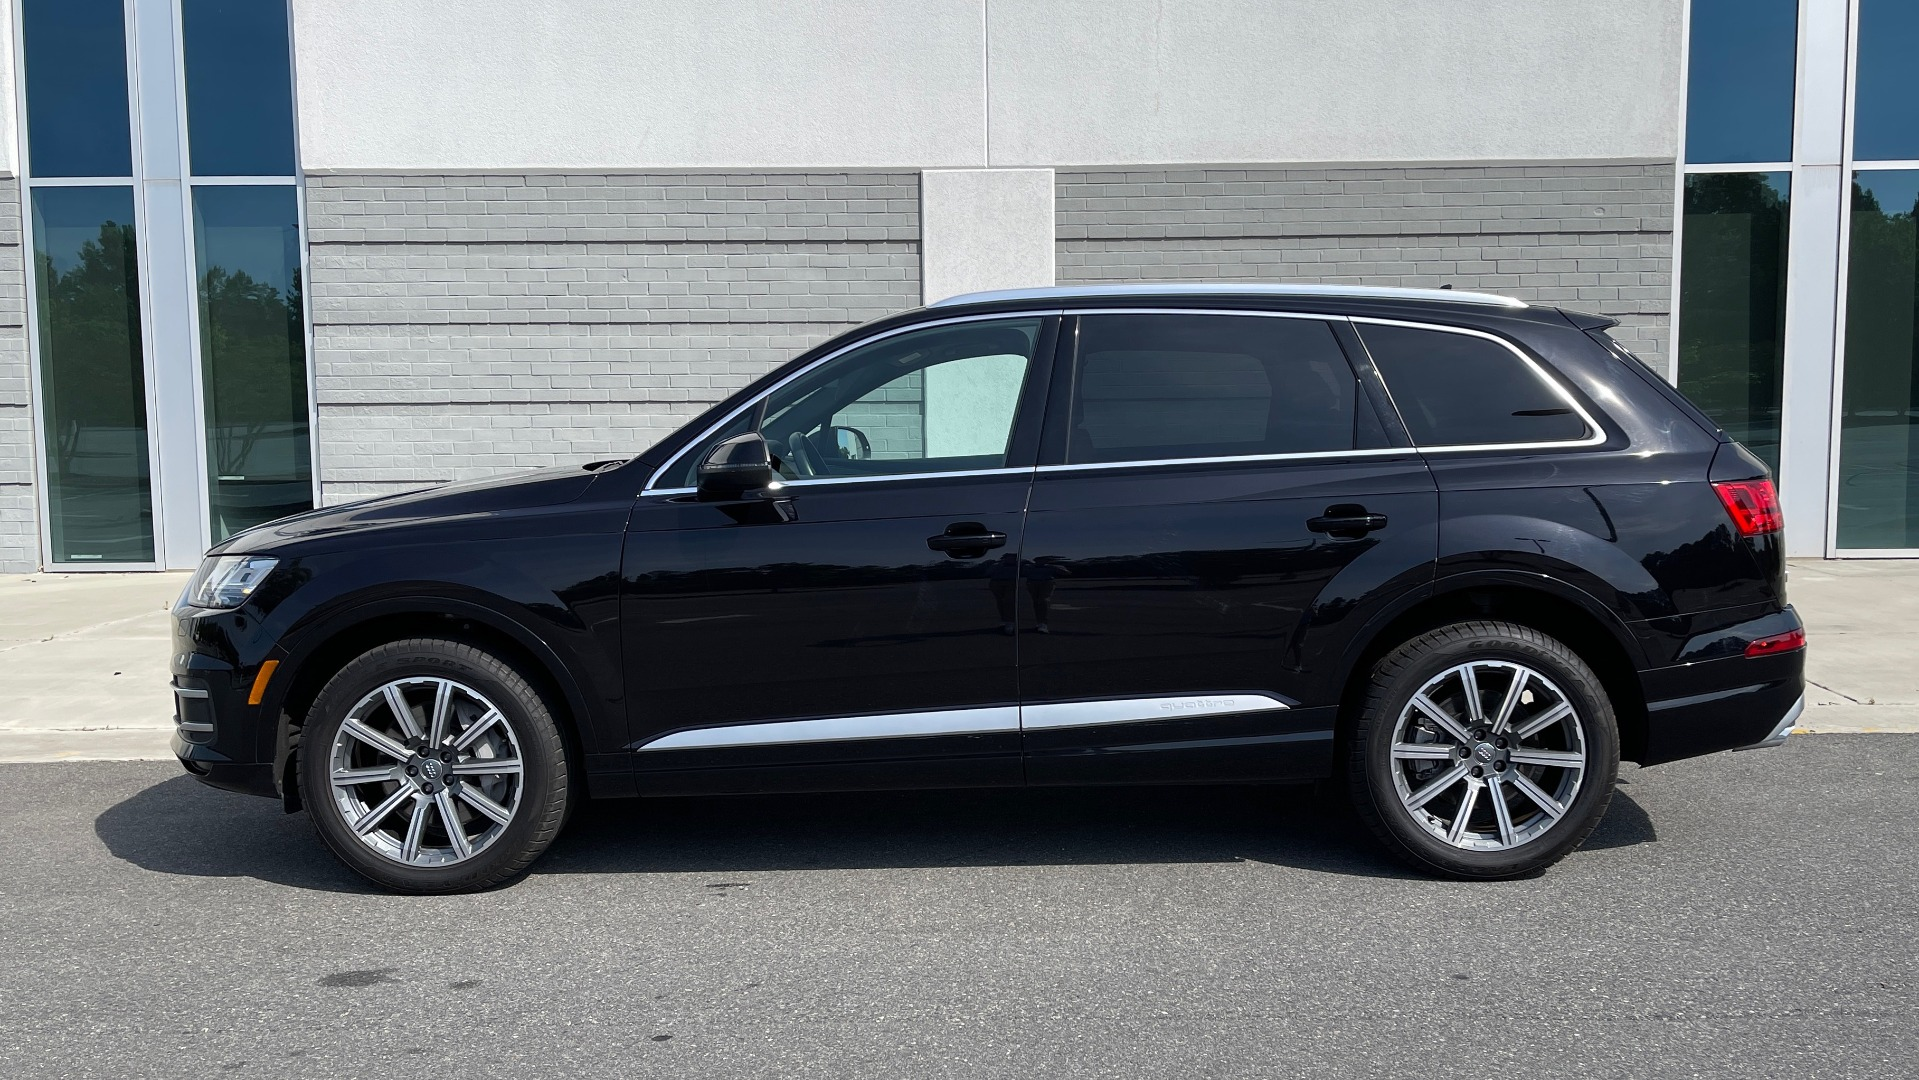 Used 2018 Audi Q7 PREMIUM PLUS / NAV / PANO-ROOF / BOSE / 3-ROW / REARVIEW for sale $43,461 at Formula Imports in Charlotte NC 28227 5